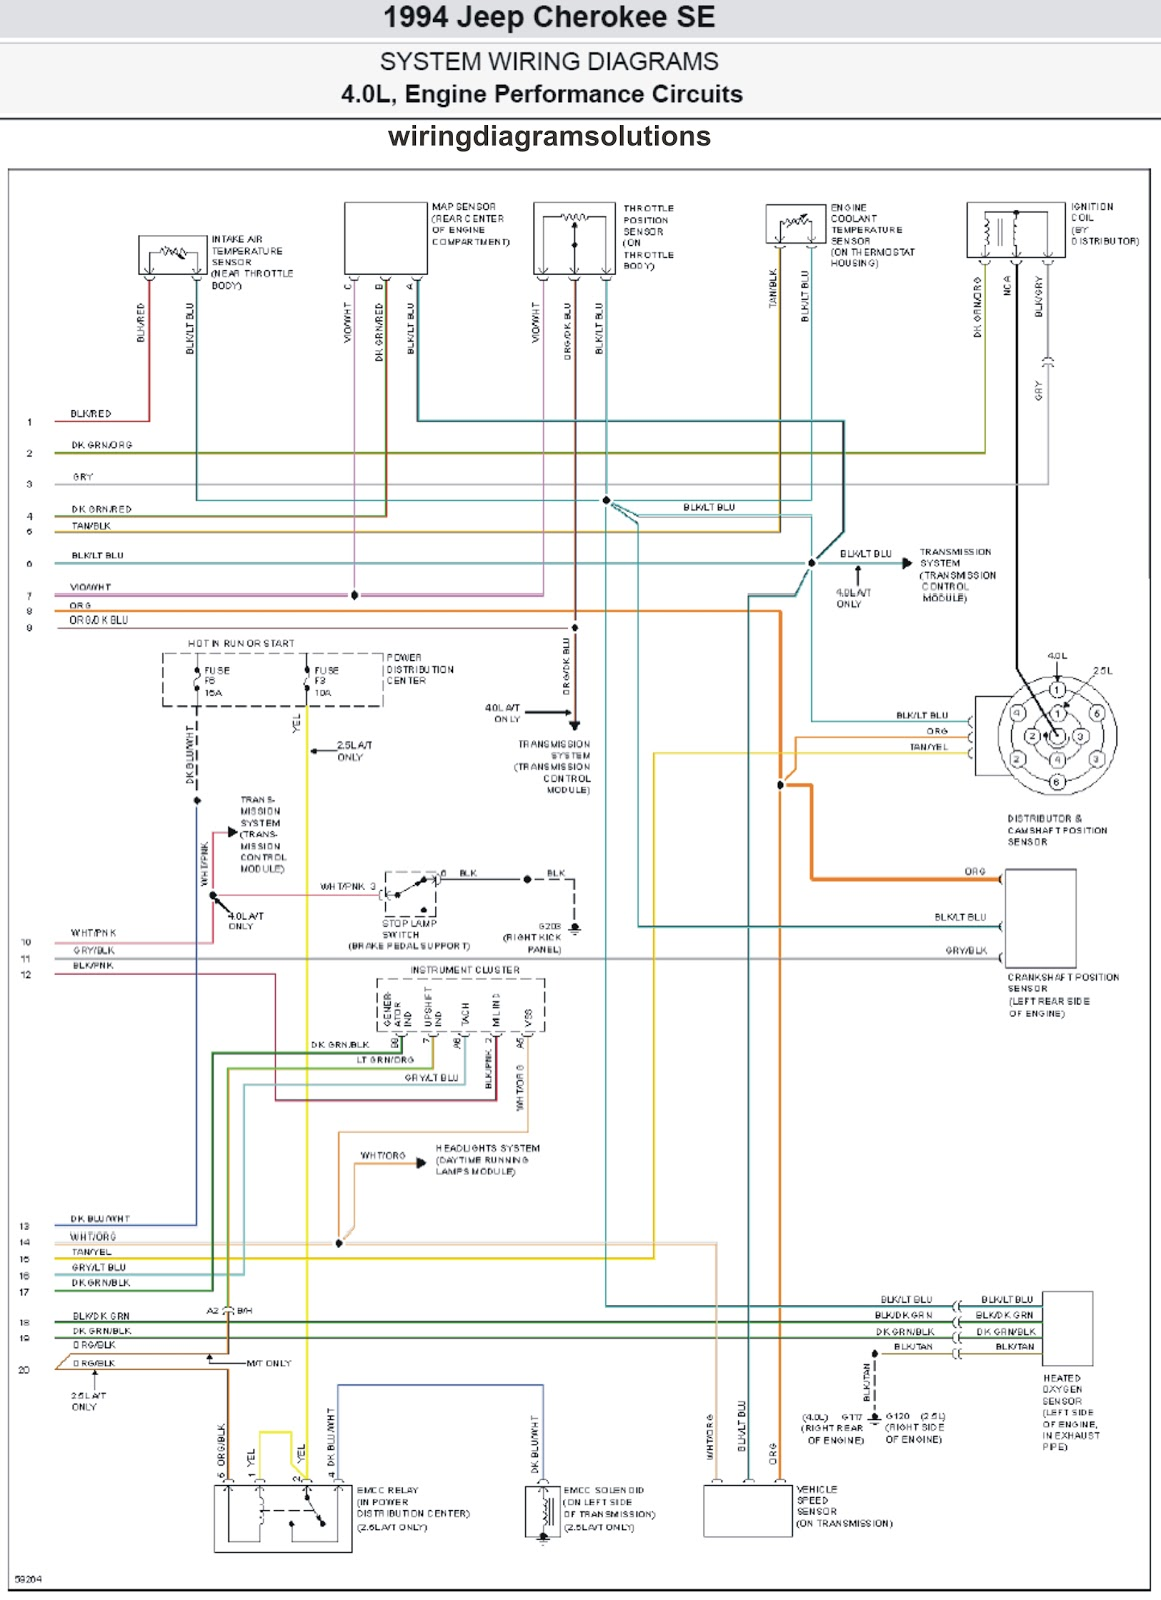 98 jeep grand cherokee stereo wiring diagram may 2011 | schematic wiring diagrams solutions